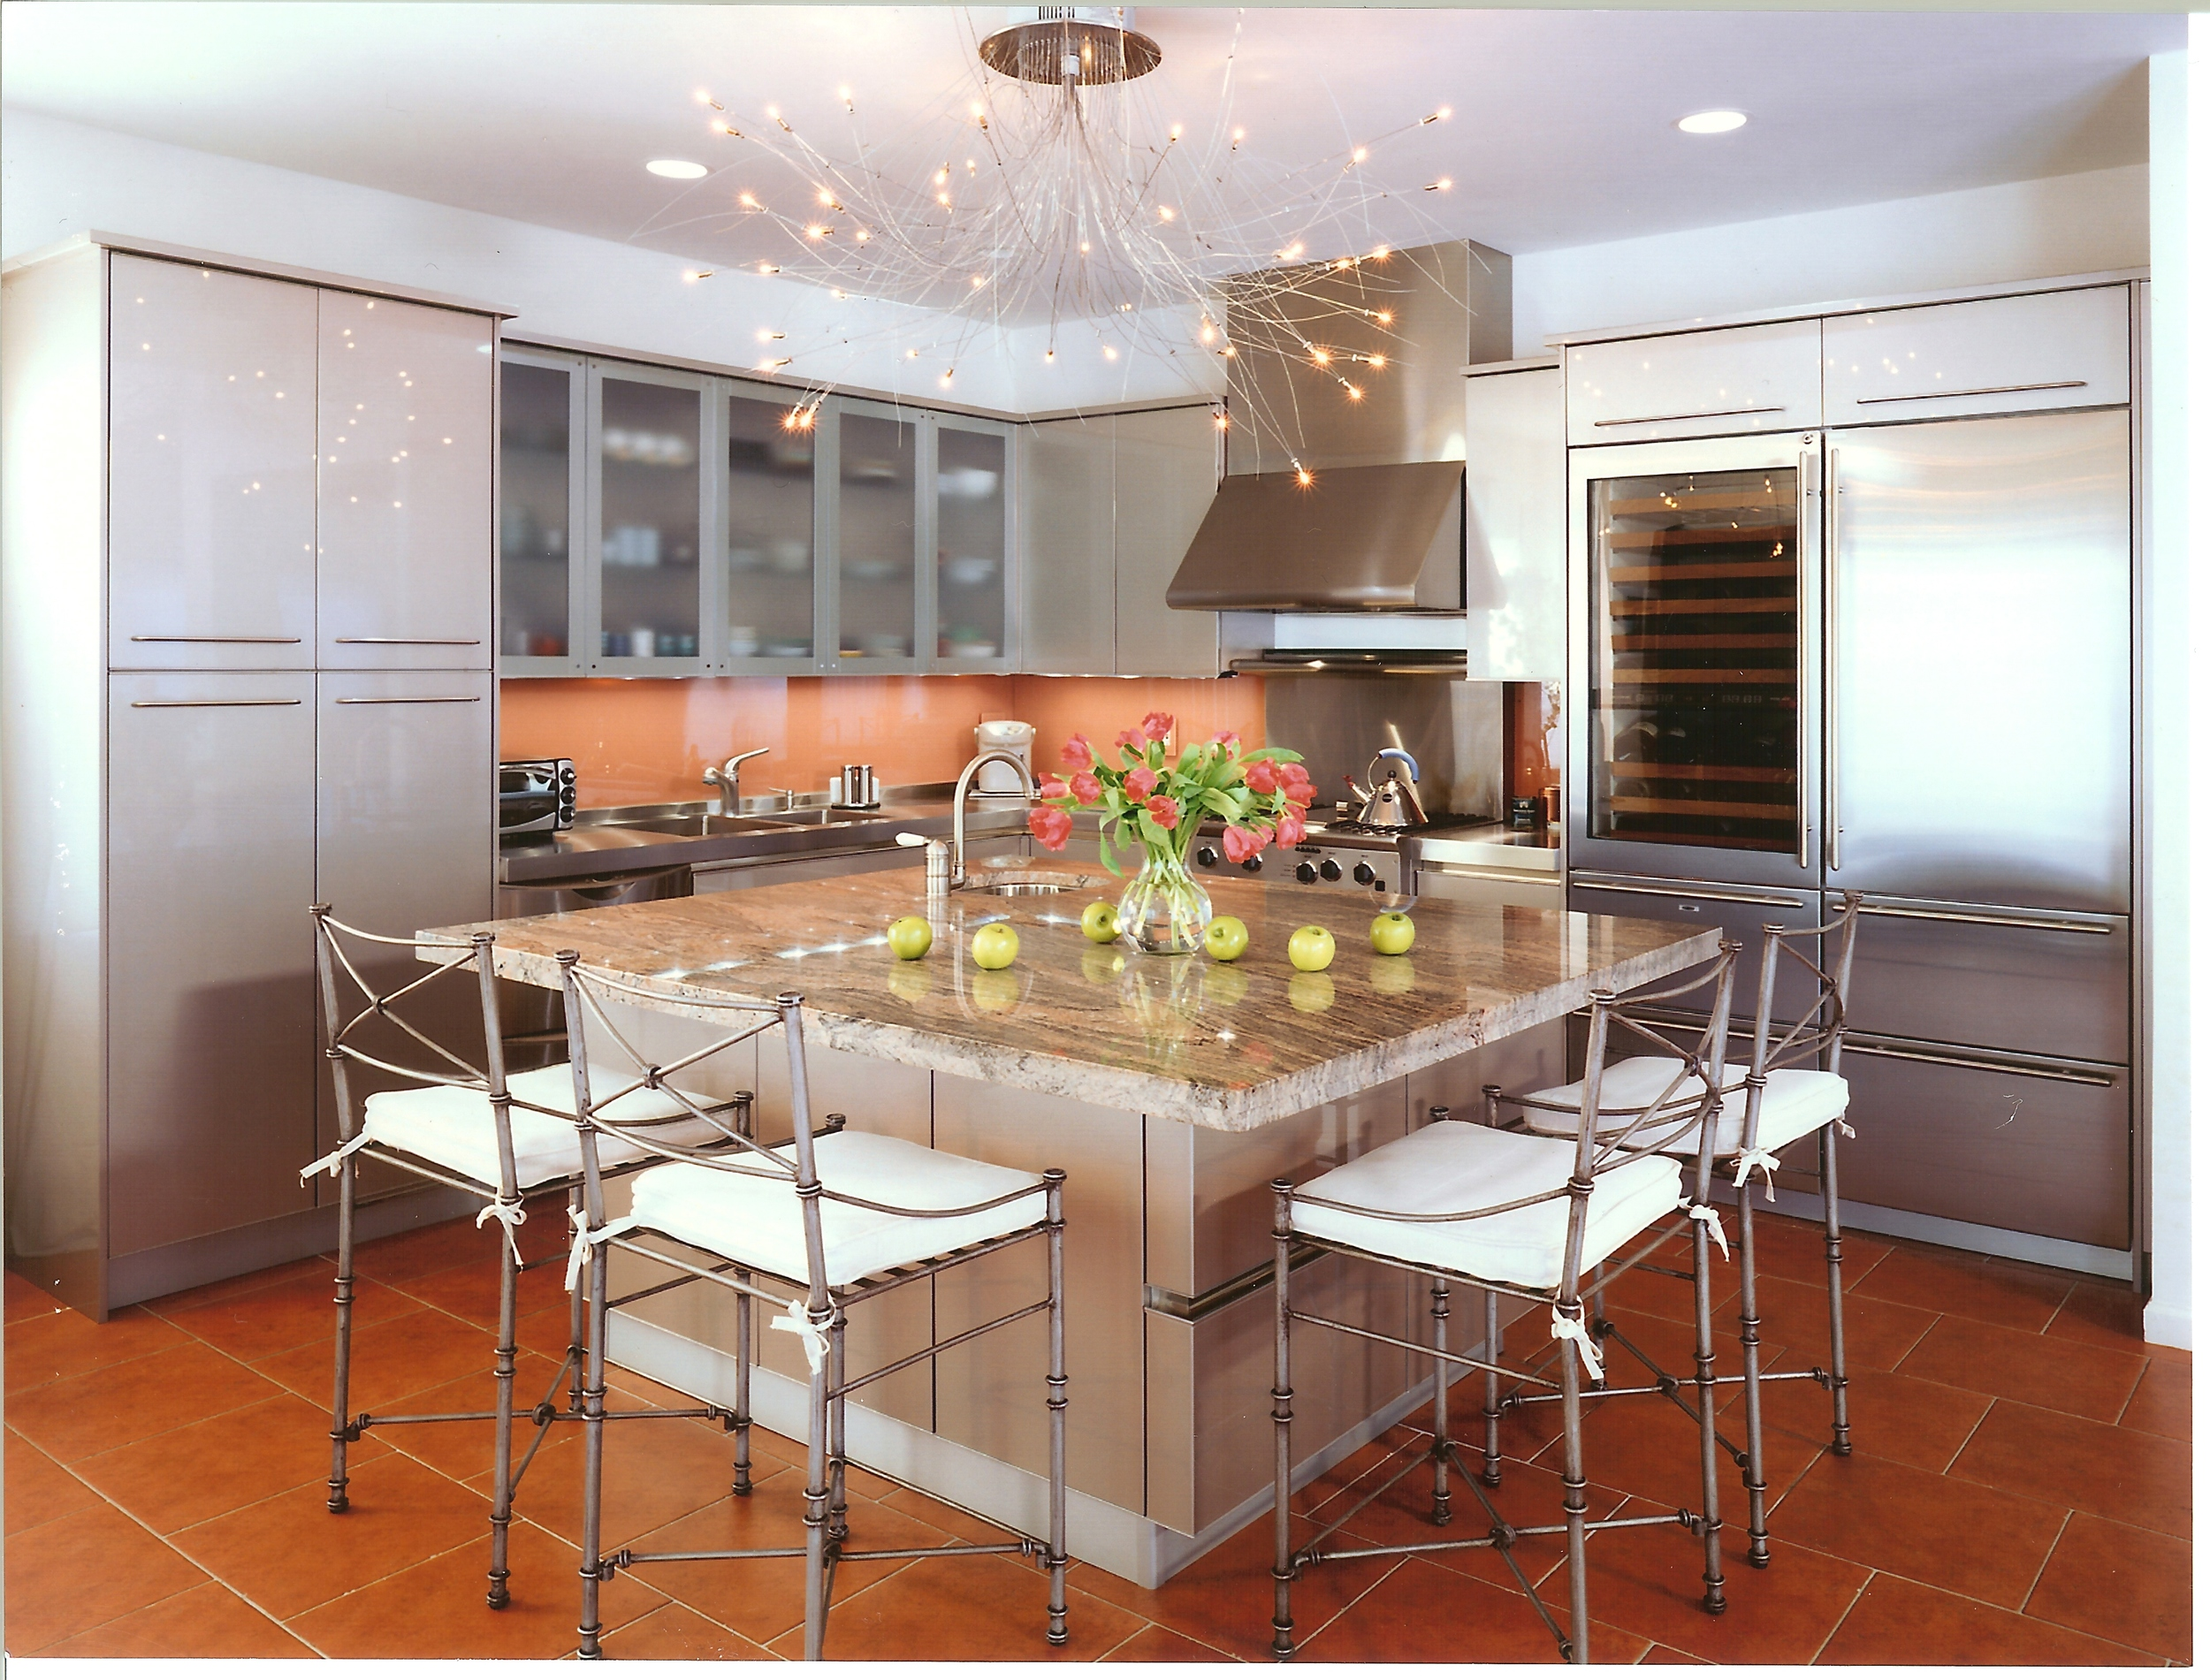 Contact us at 516-365-0595 for your home remodeling and kitchen and bath design needs!